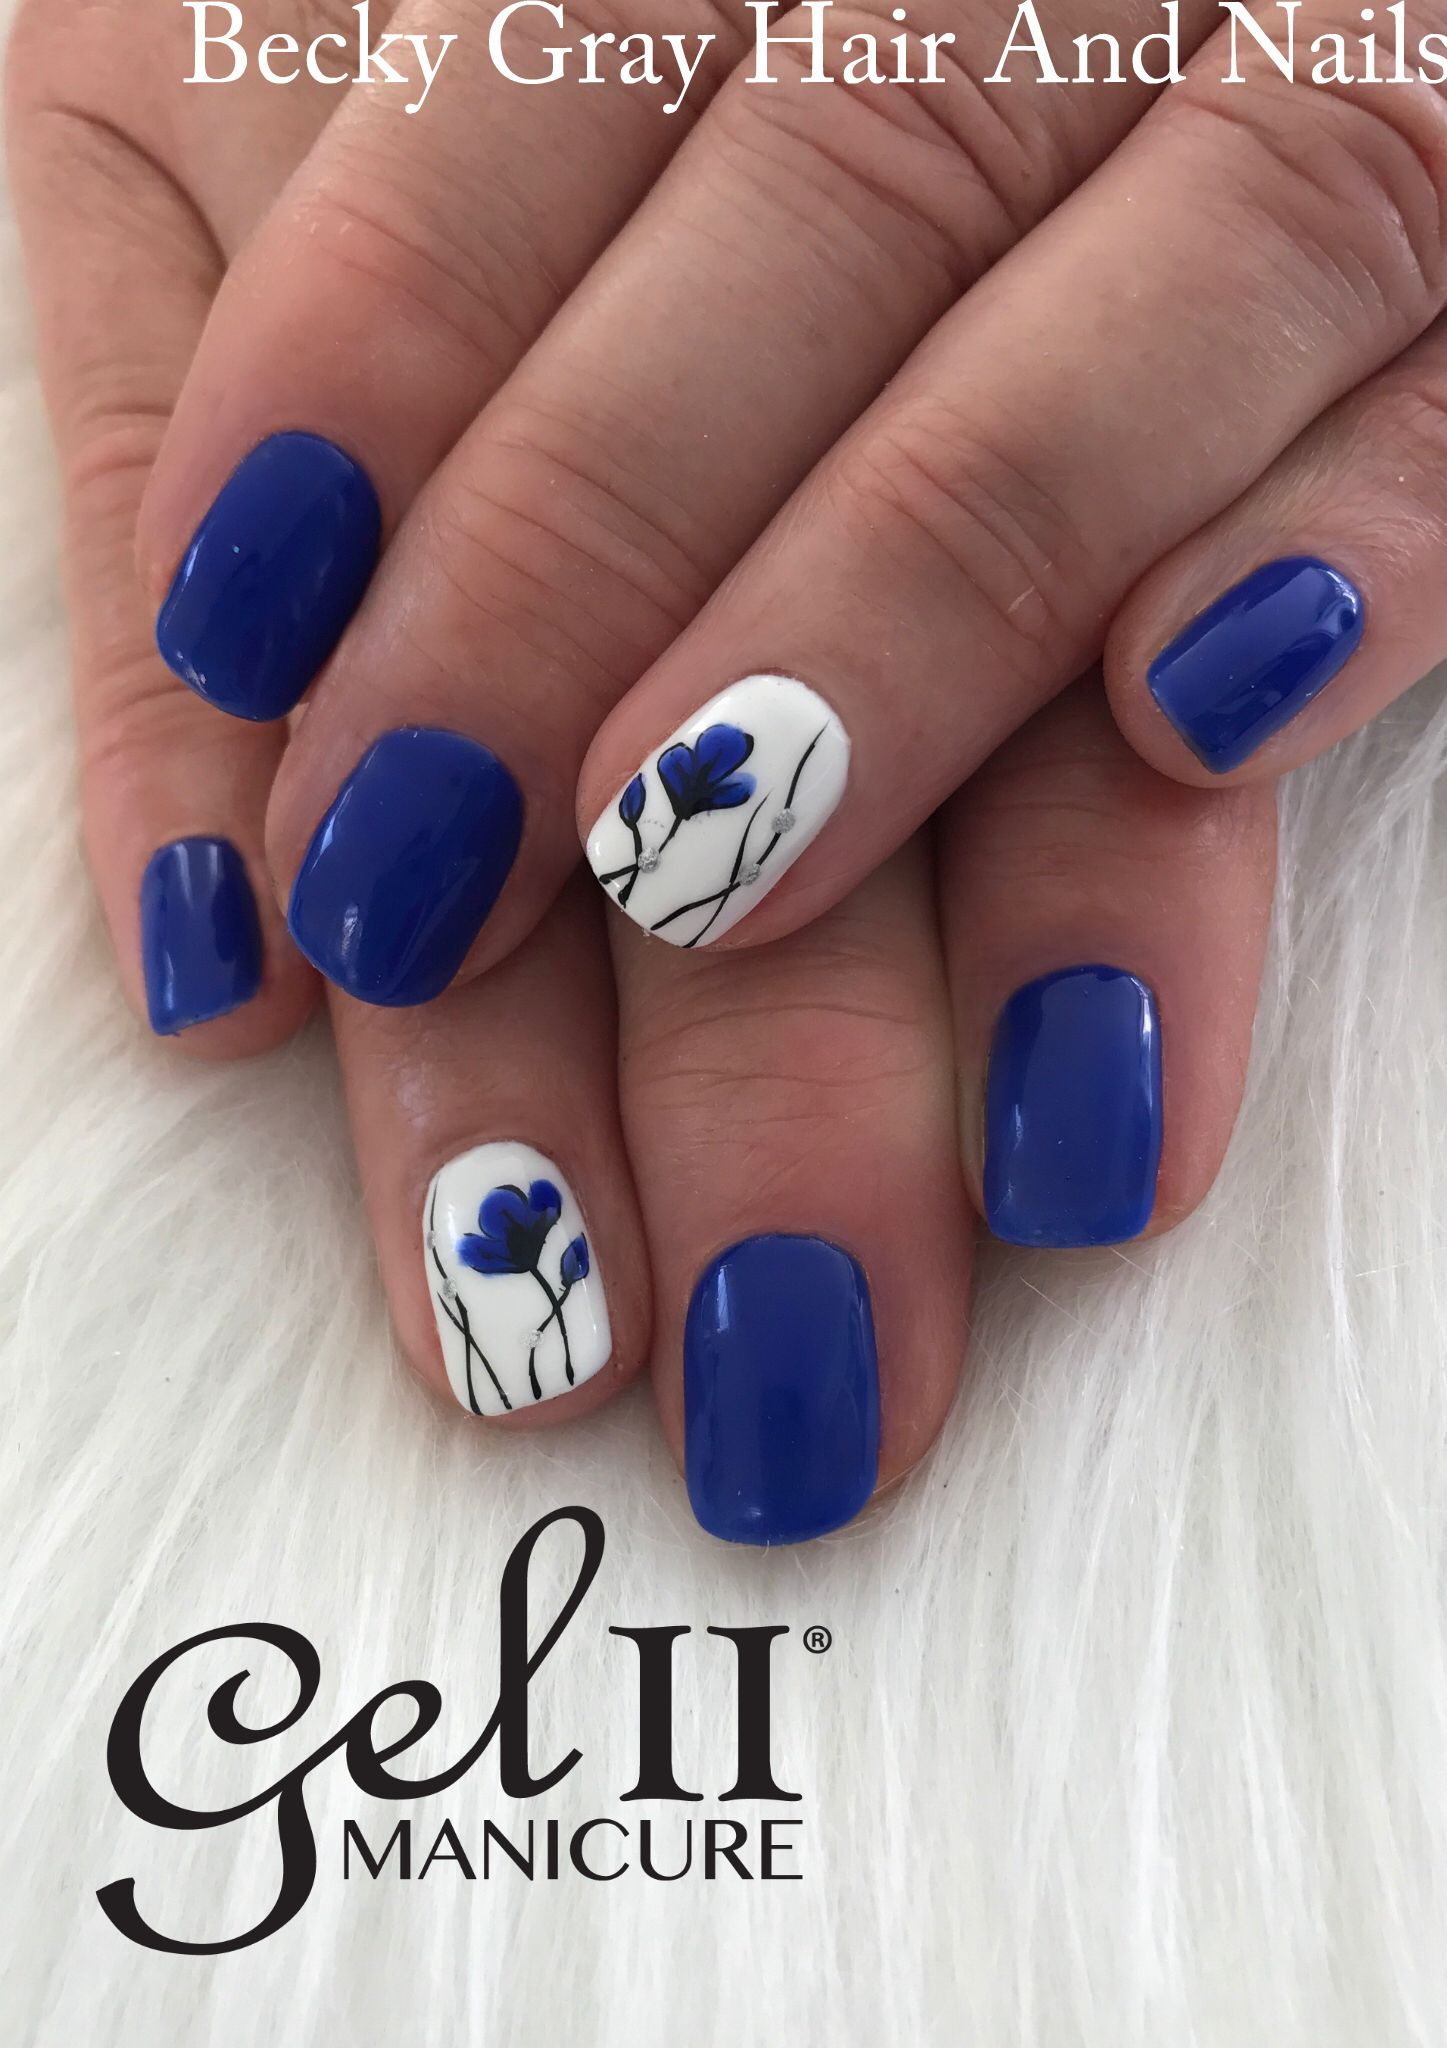 Gel ii manicure Caribbean vibe and hand painted nail art #gelii ...